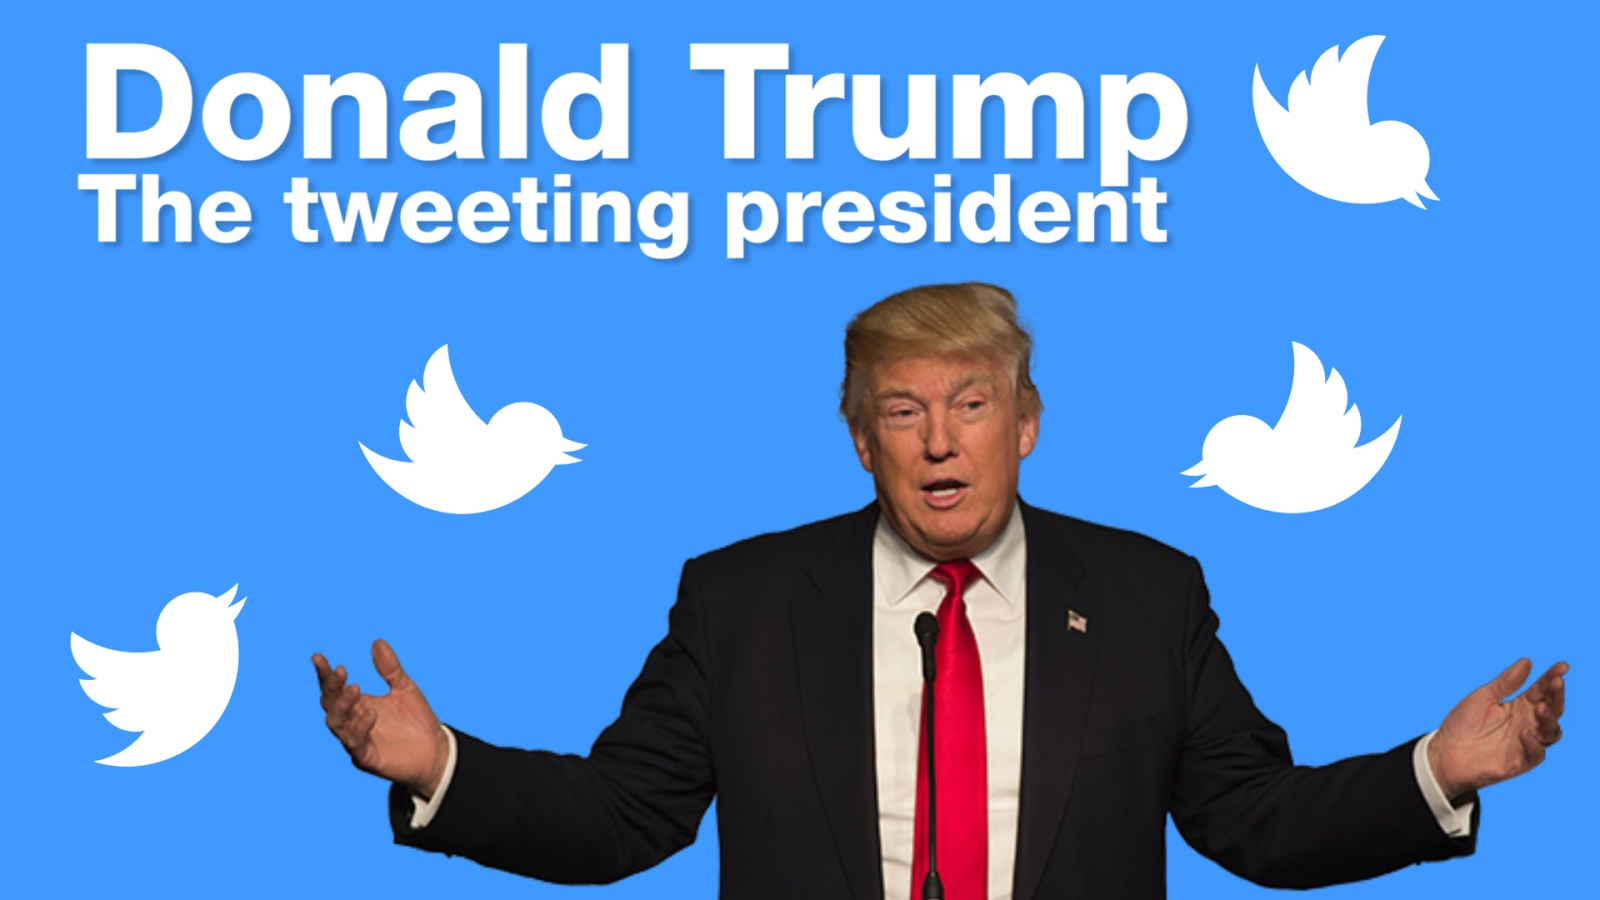 Donald Trump: The Twitter president